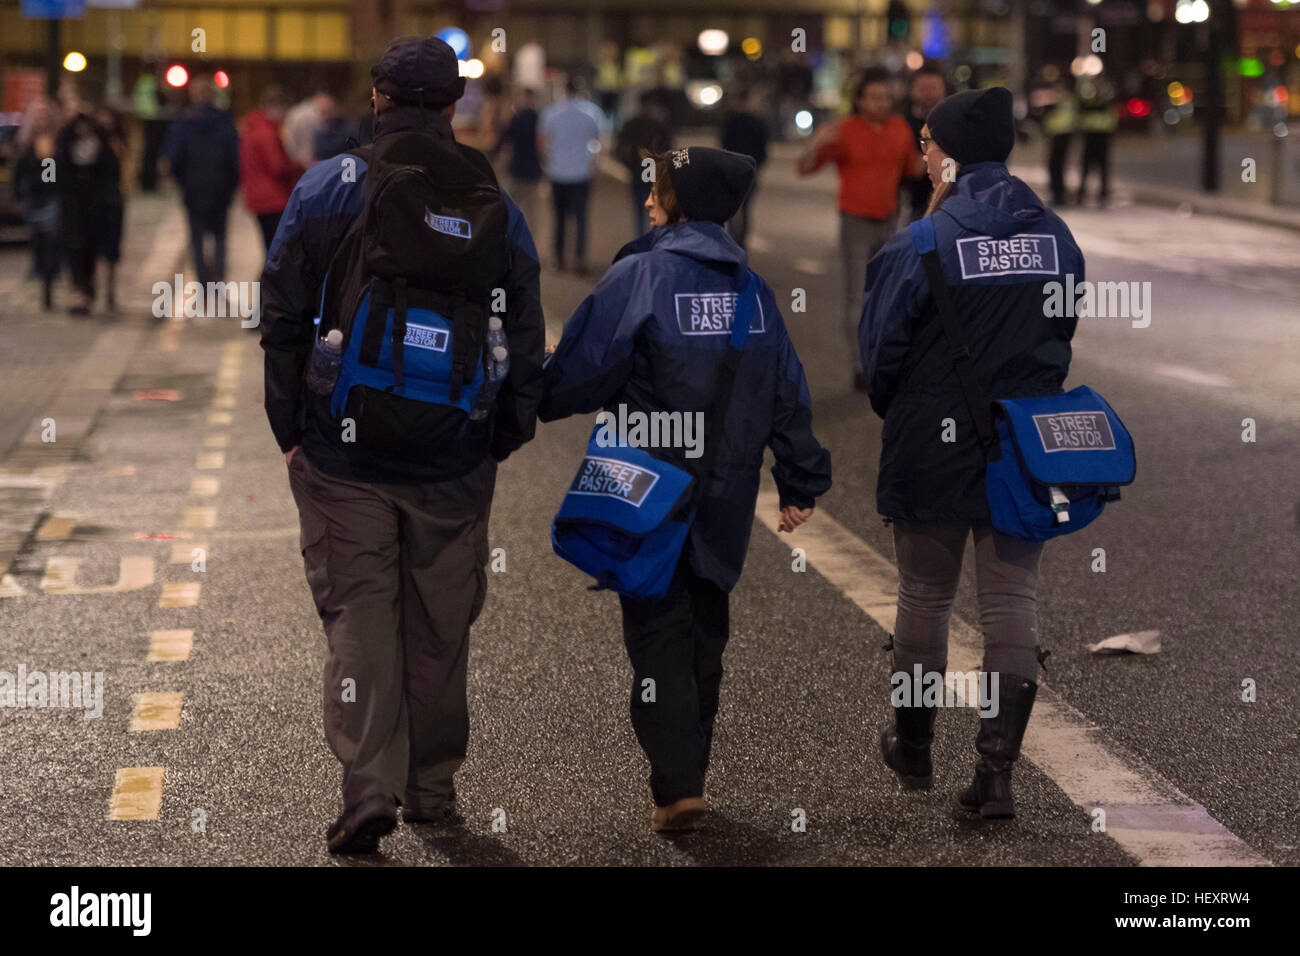 Street pastors on St. Mary's Street during Black Friday in Cardiff, South Wales. Black Friday / Mad Friday is - Stock Image